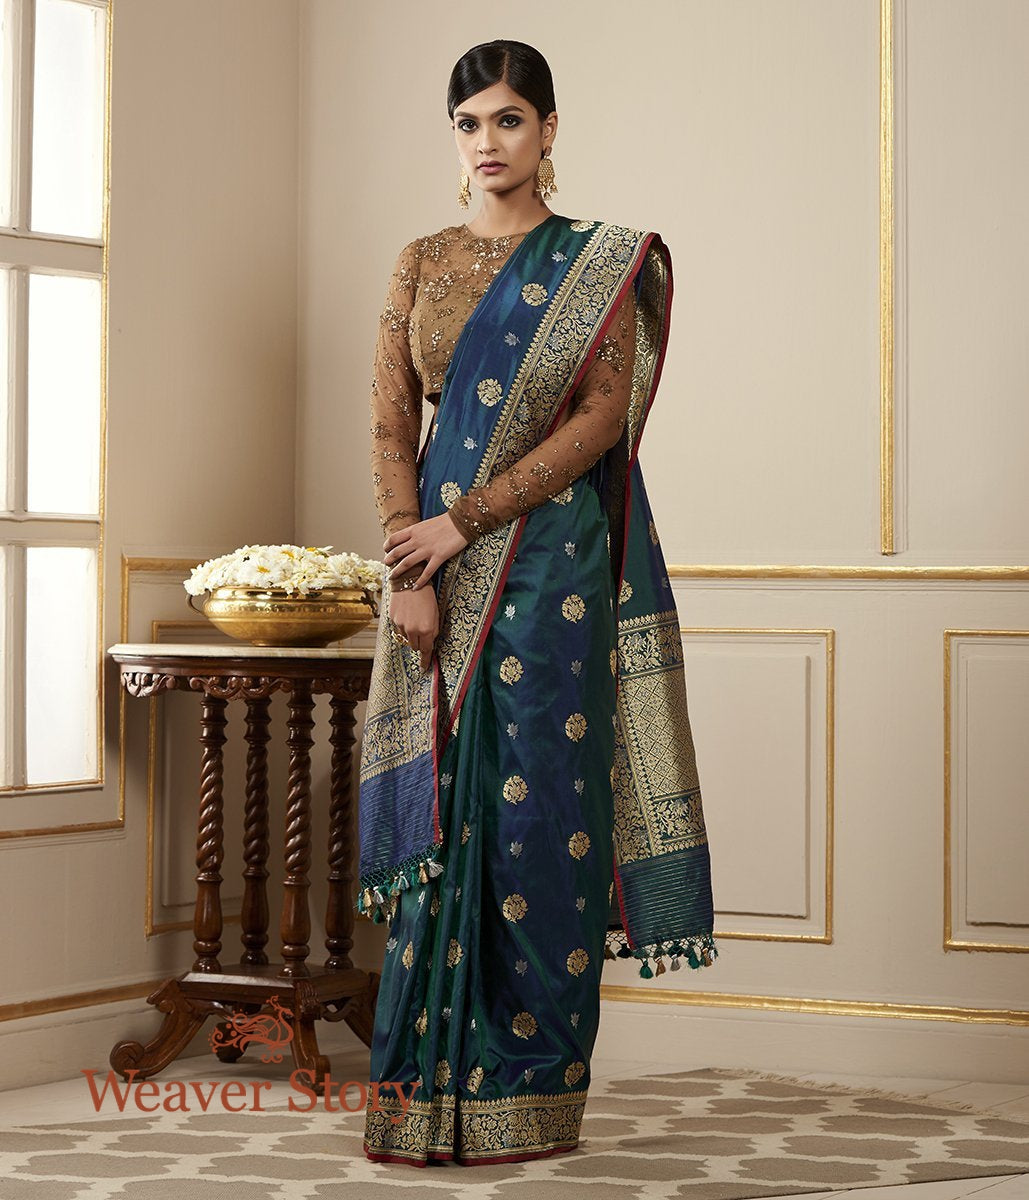 Handwoven Blue and Green Dual Tone Kadhwa Booti Saree